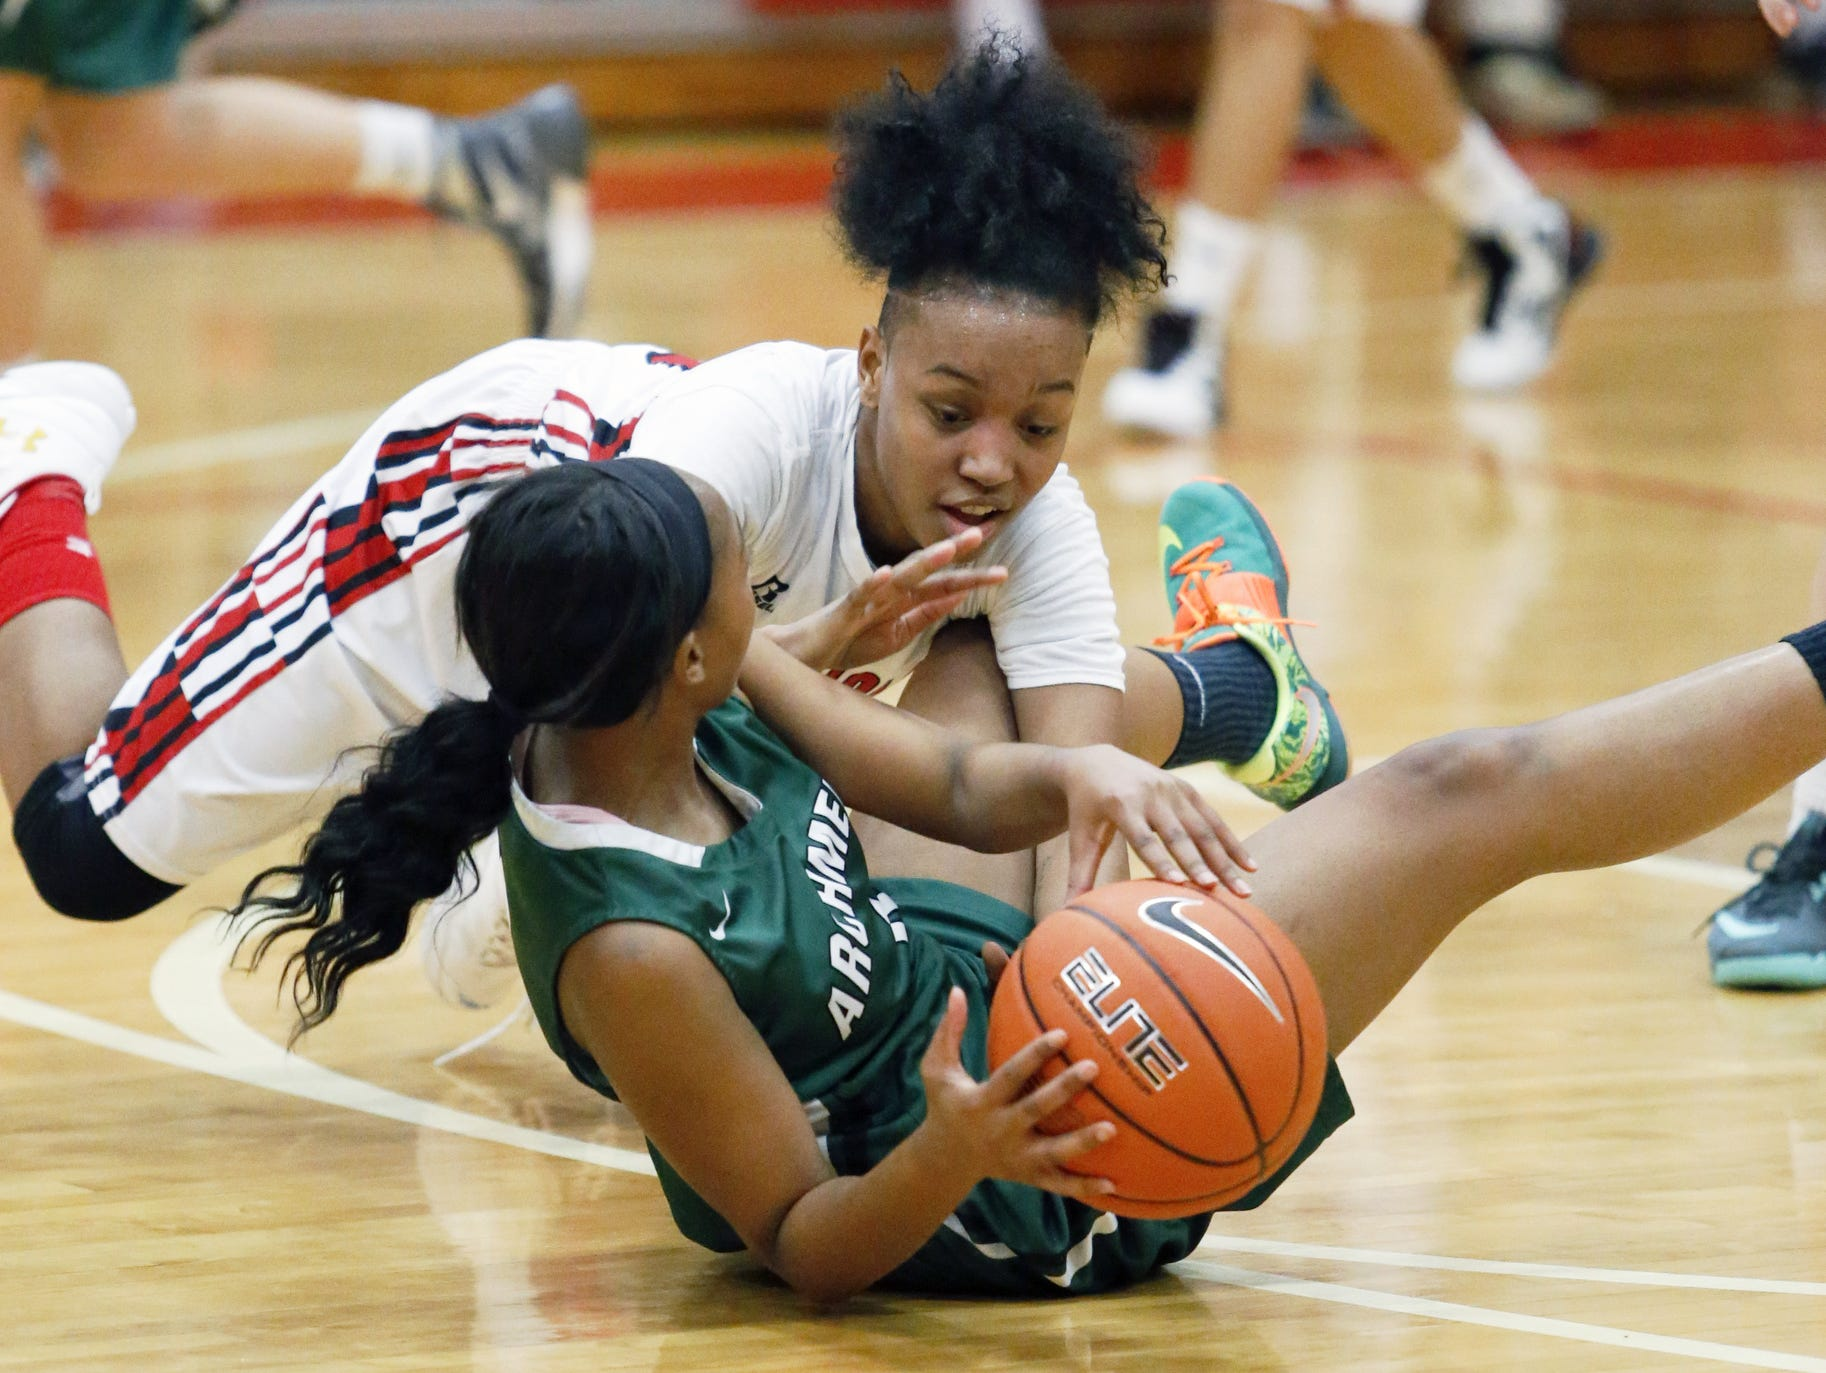 William Penn's Alize Felton falls on Archmere's Danaziah Brown as they scrap over a loose ball in the Auks' 42-39 win at William Penn in the opening round of the DIAA state tournament.